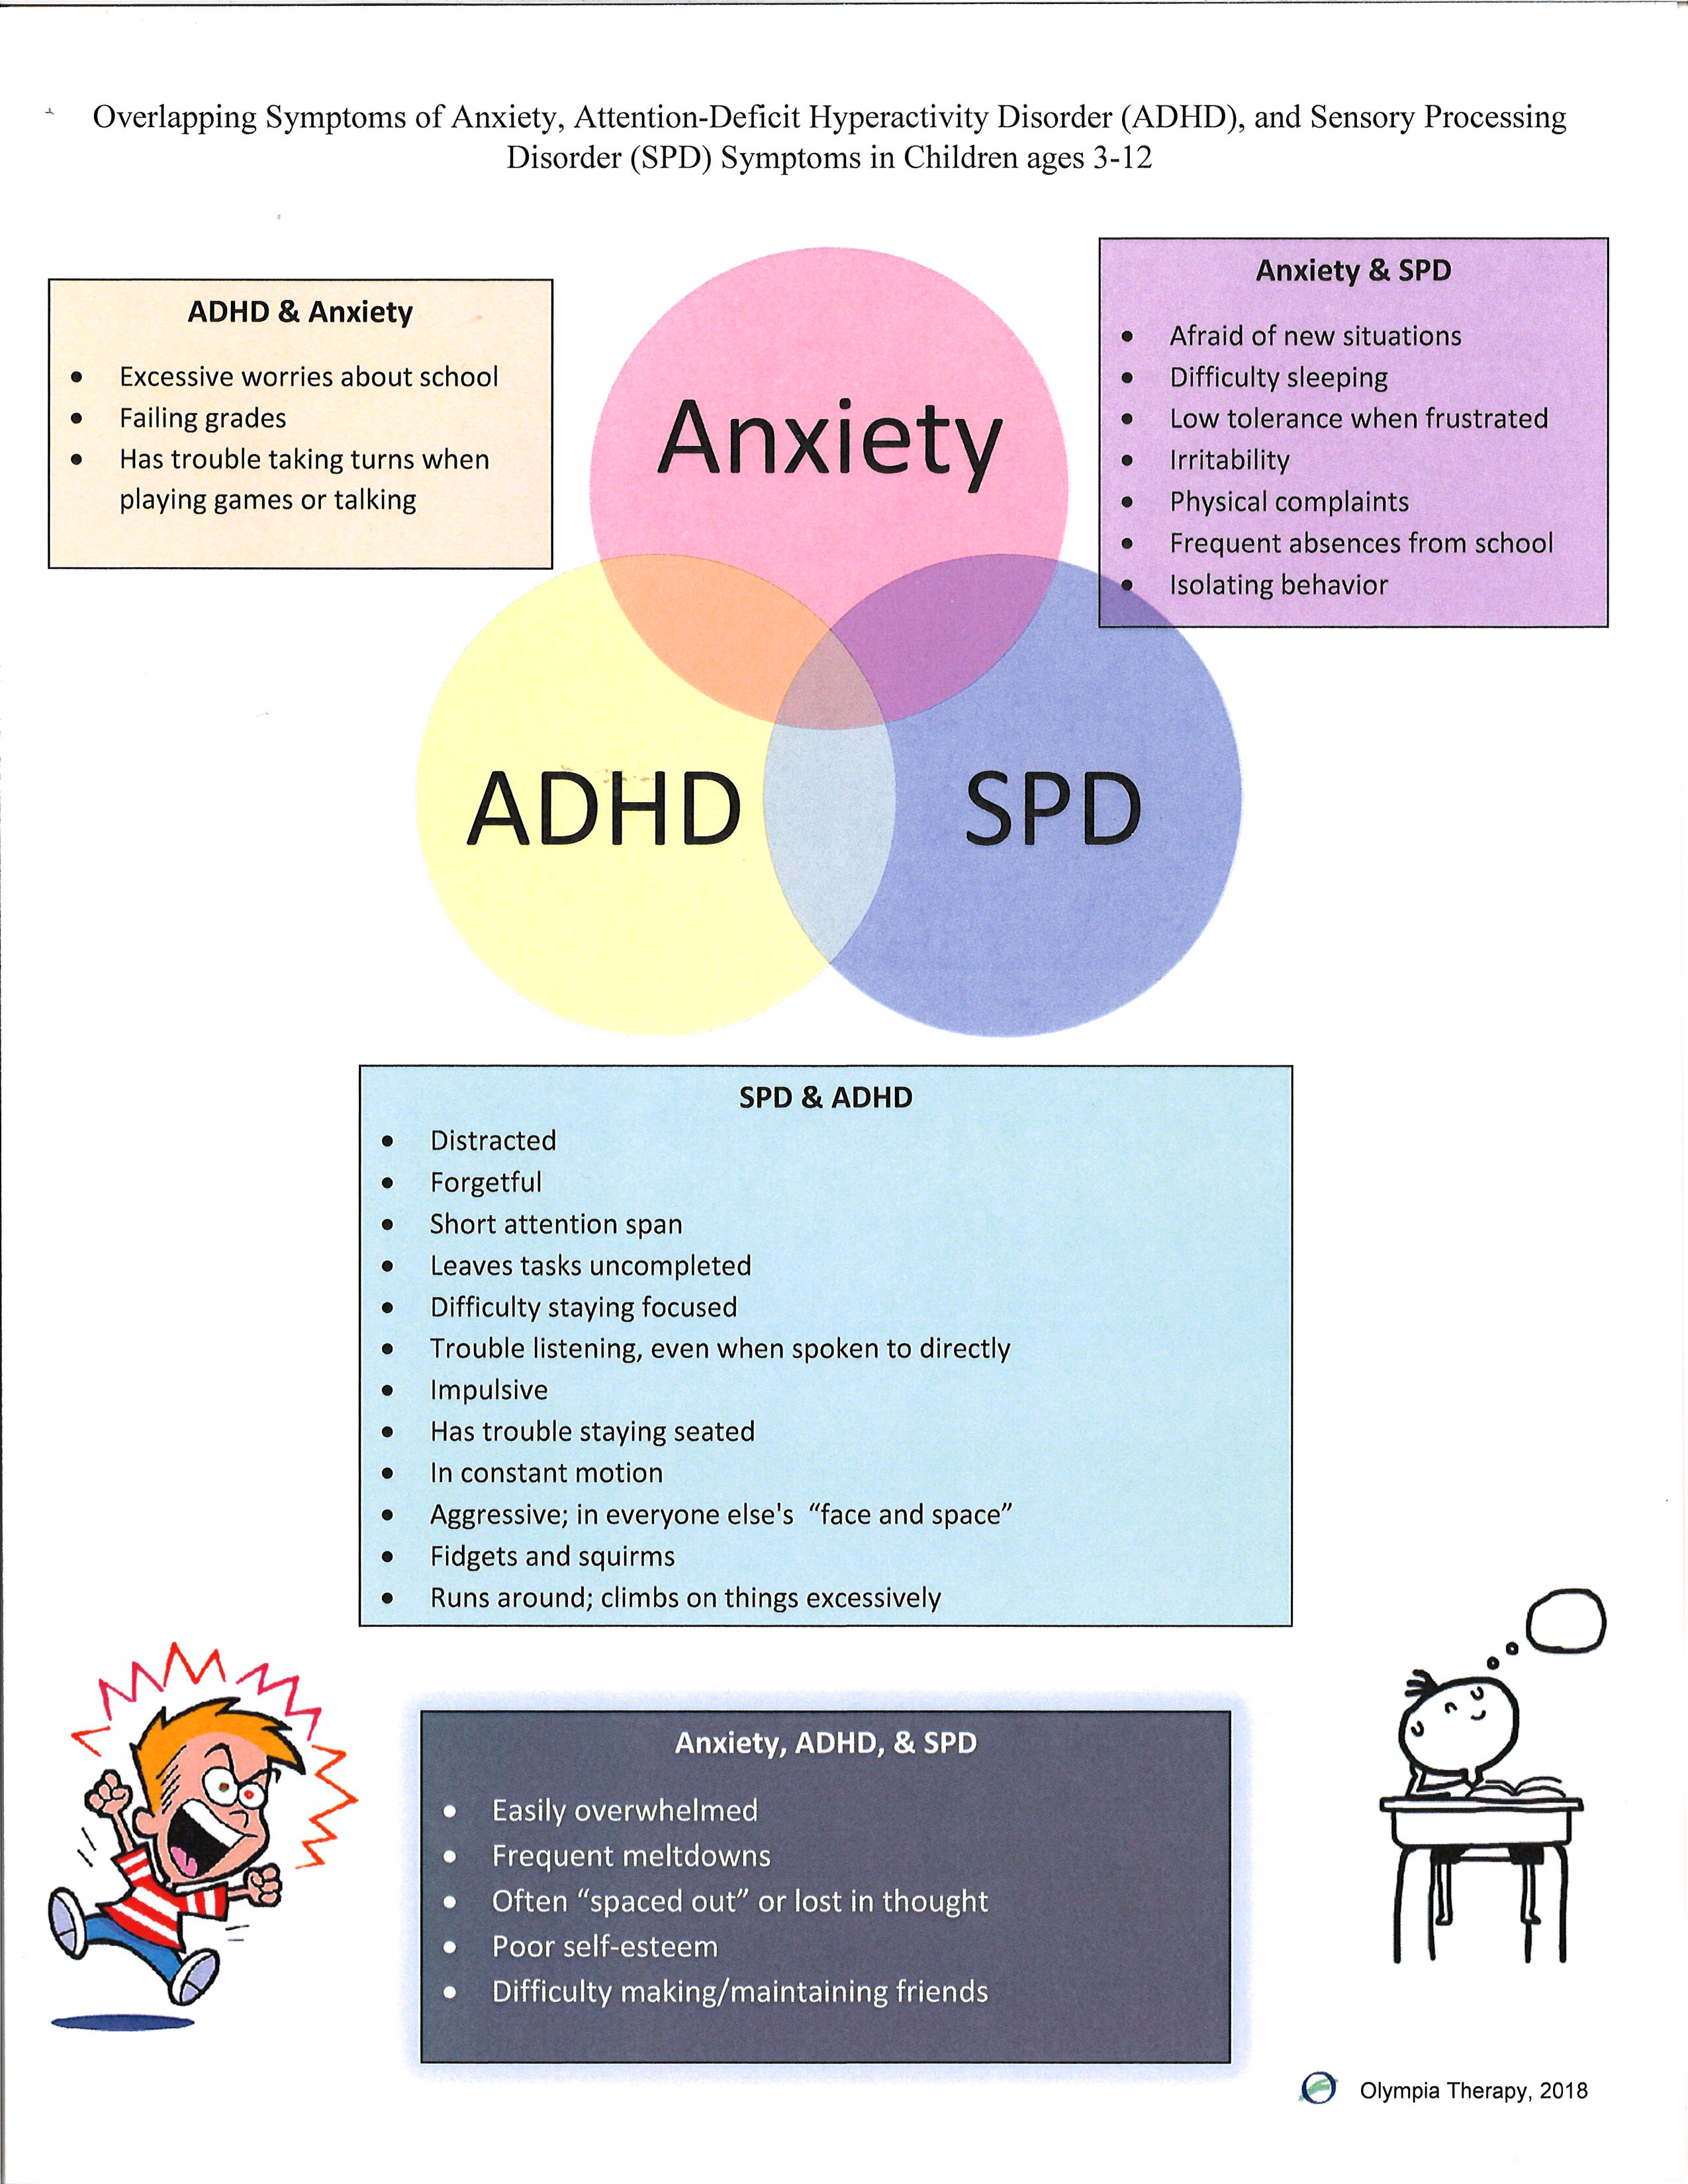 f51785bbbda5 When they all look alike: ADHD, Anxiety, & SPD. | Child Therapy |  Washington | Olympia Therapy PLLC